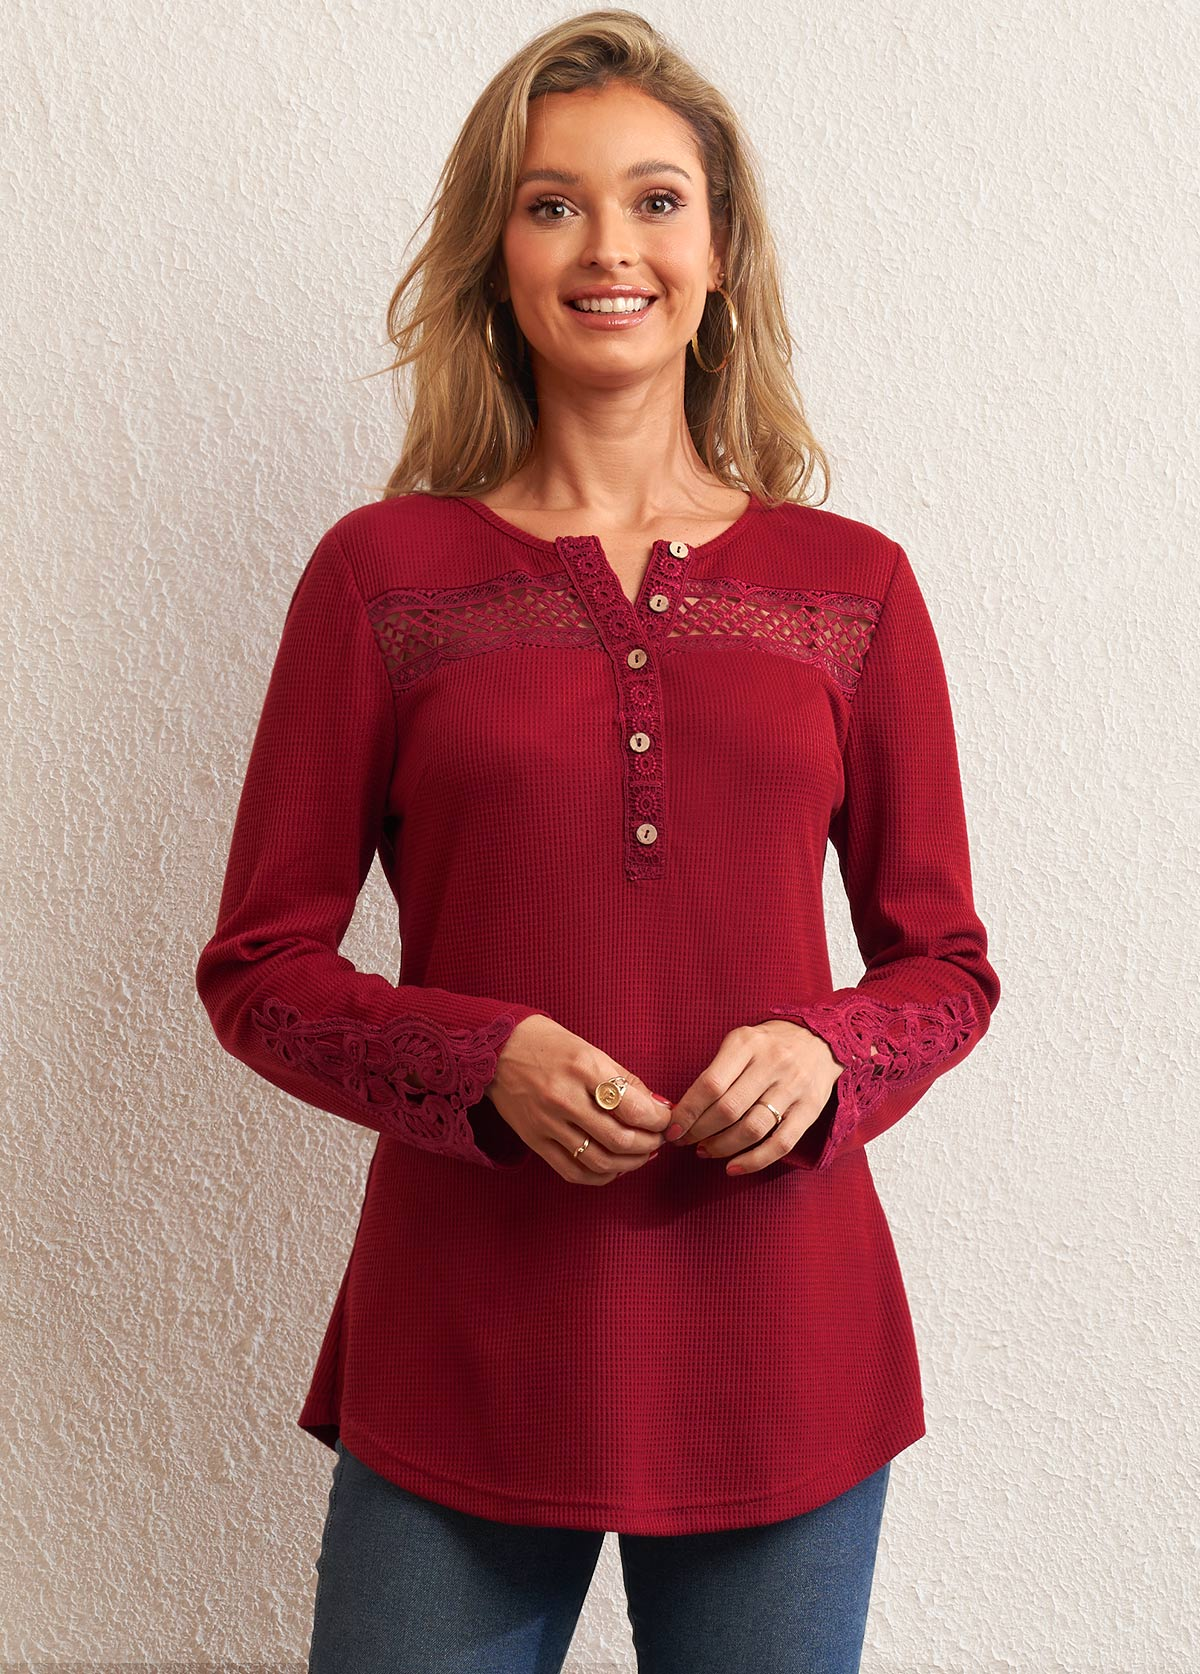 ROTITA Solid Lace Patchwork Split Neck Tunic Top